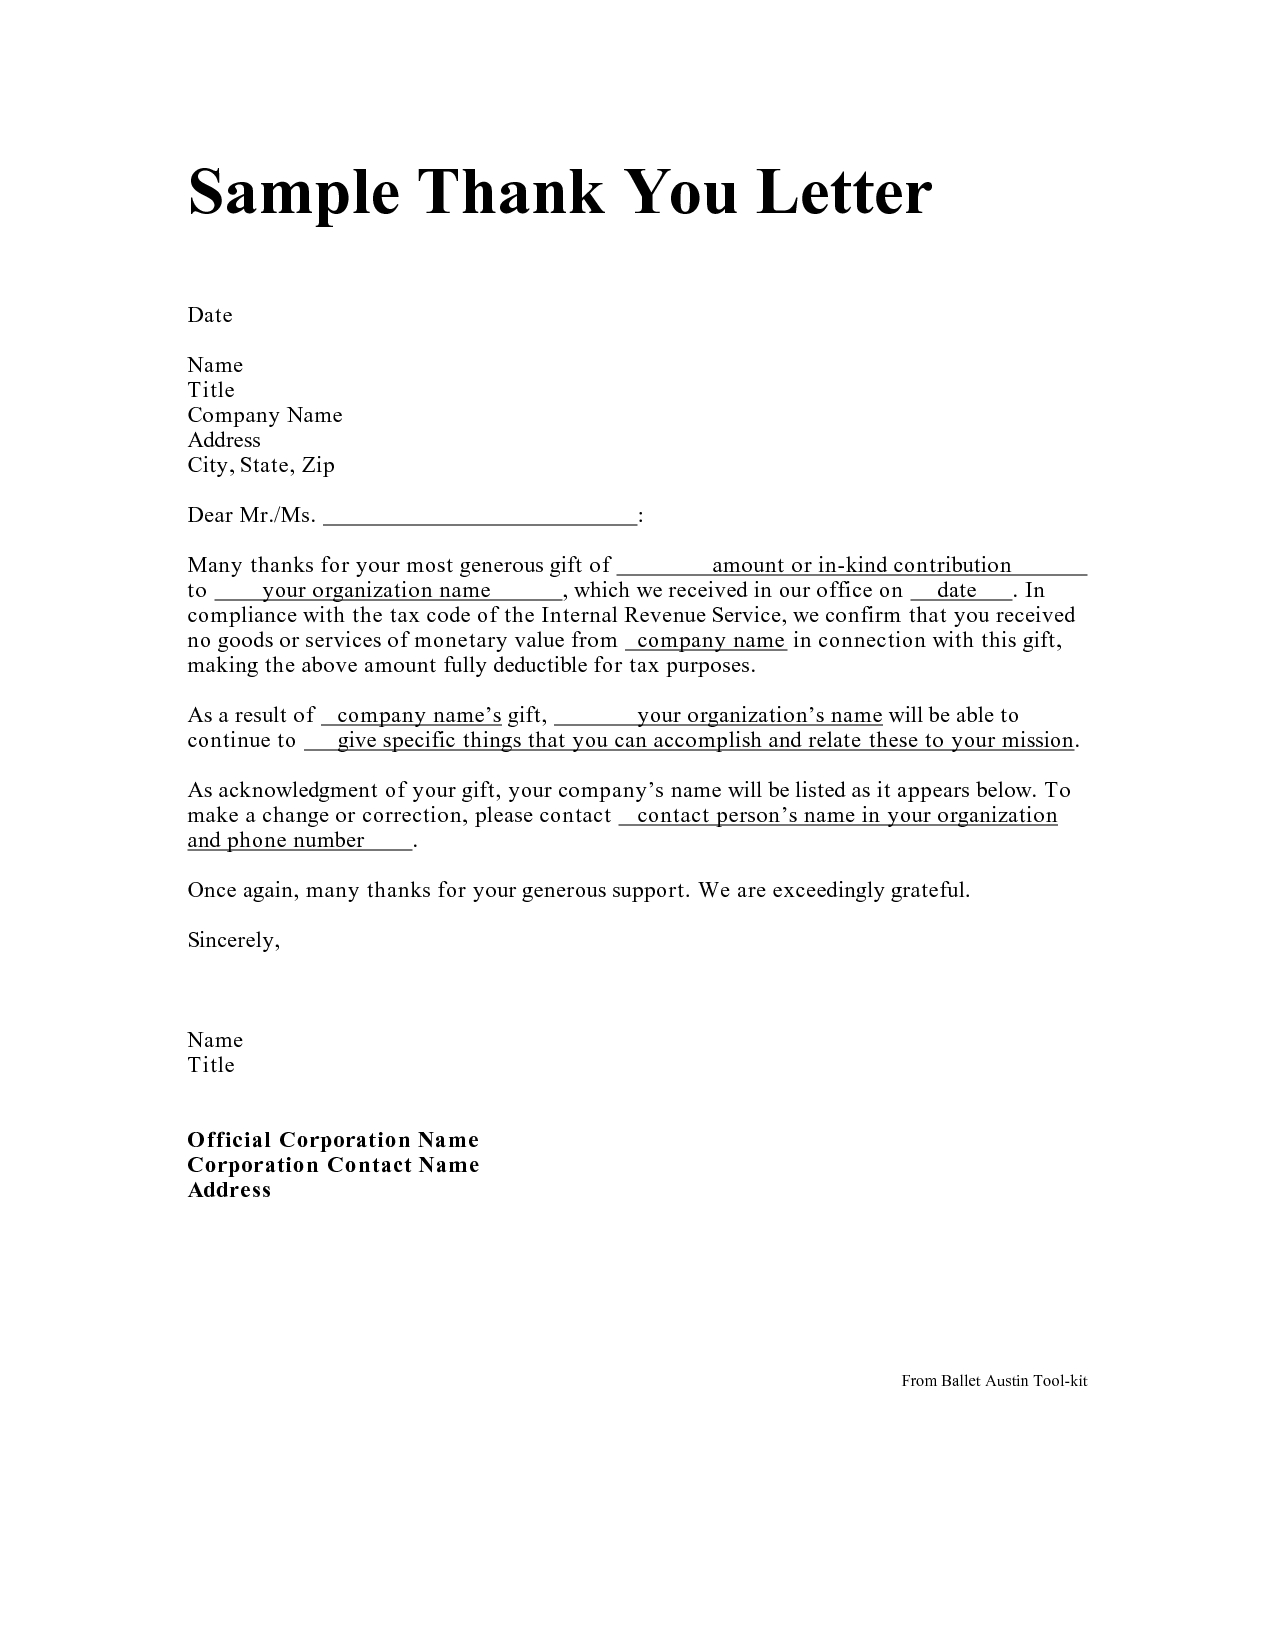 Acknowledgement Of Donation Letter Template - Personal Thank You Letter Personal Thank You Letter Samples